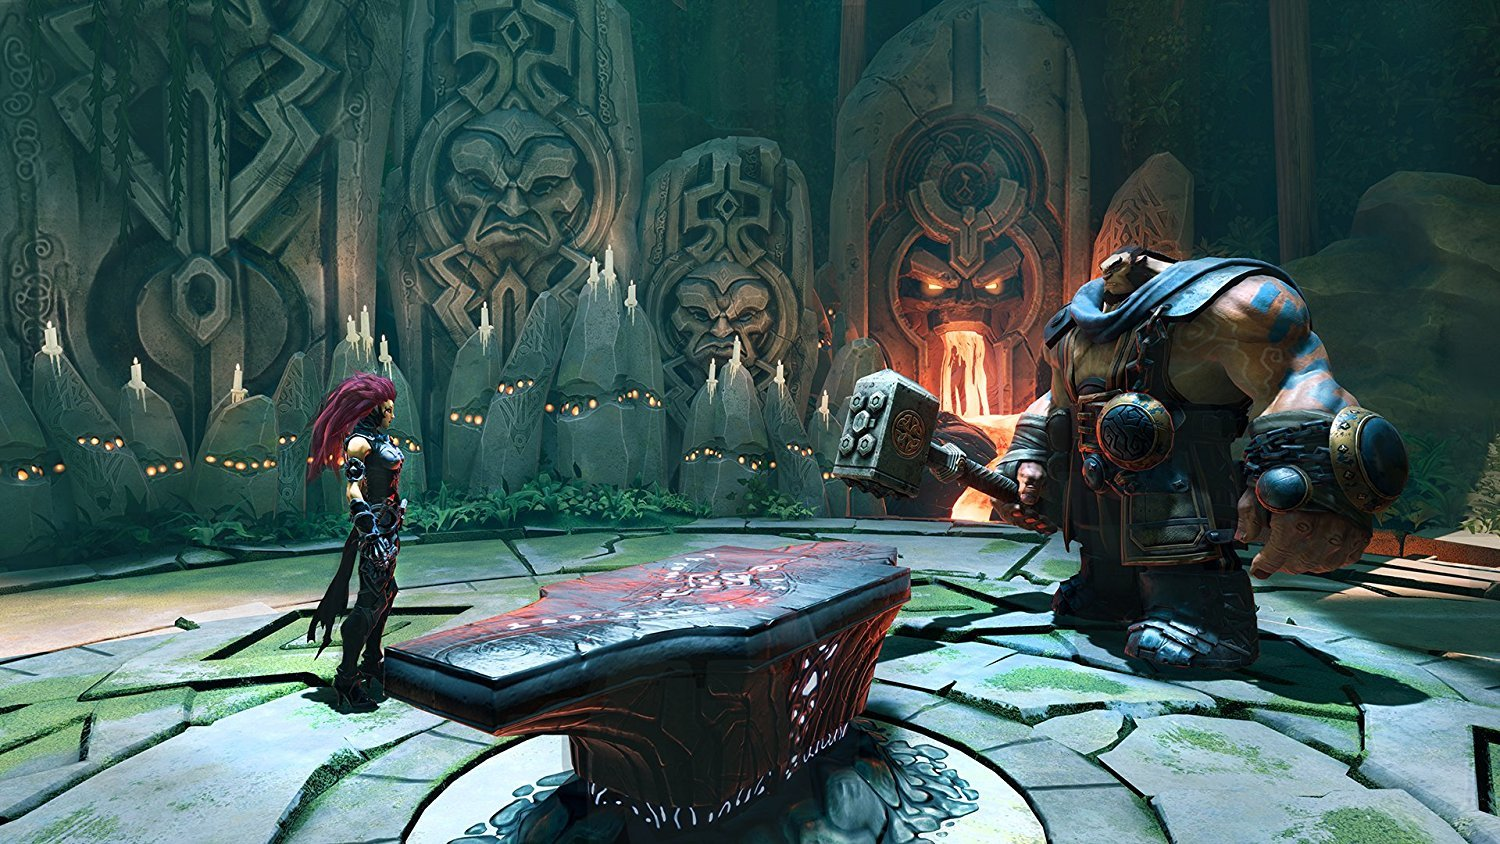 Pictures Of Amazon Reveals Darksiders Iii With First Details And